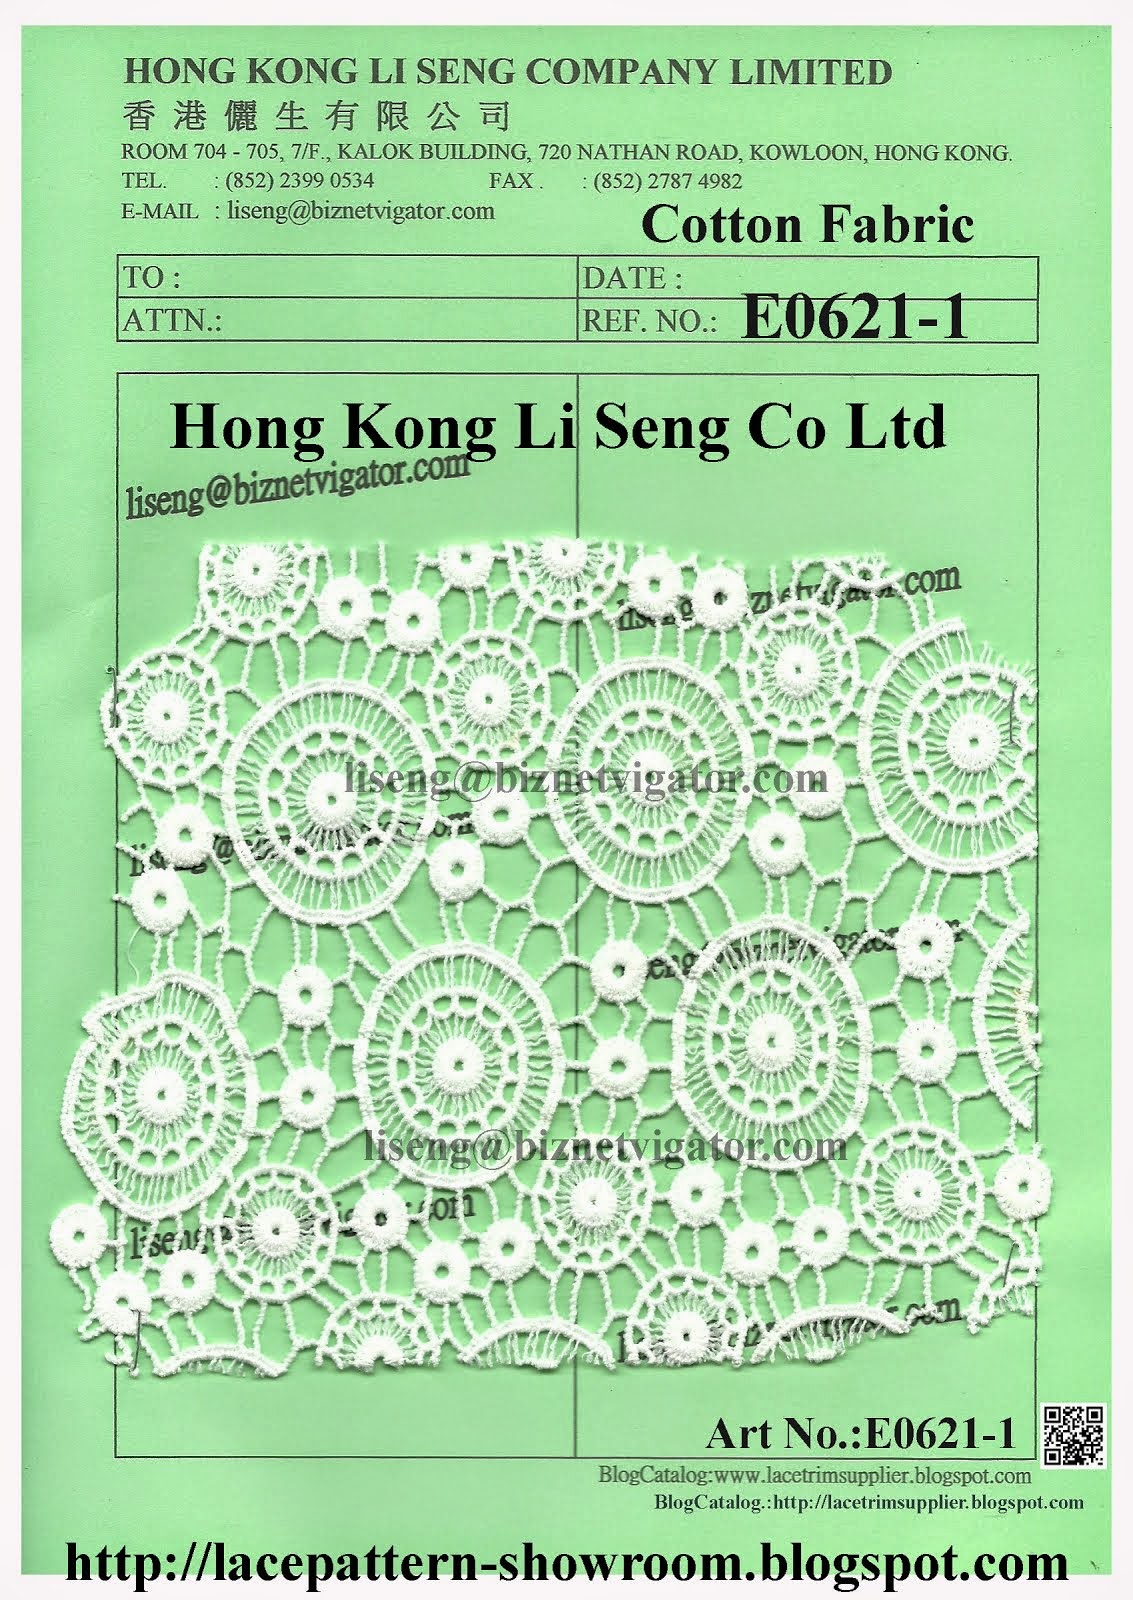 Embroidered Water Soluble Cotton Lace Fabric Manufacturer - Hong Kong Li Seng Co Ltd